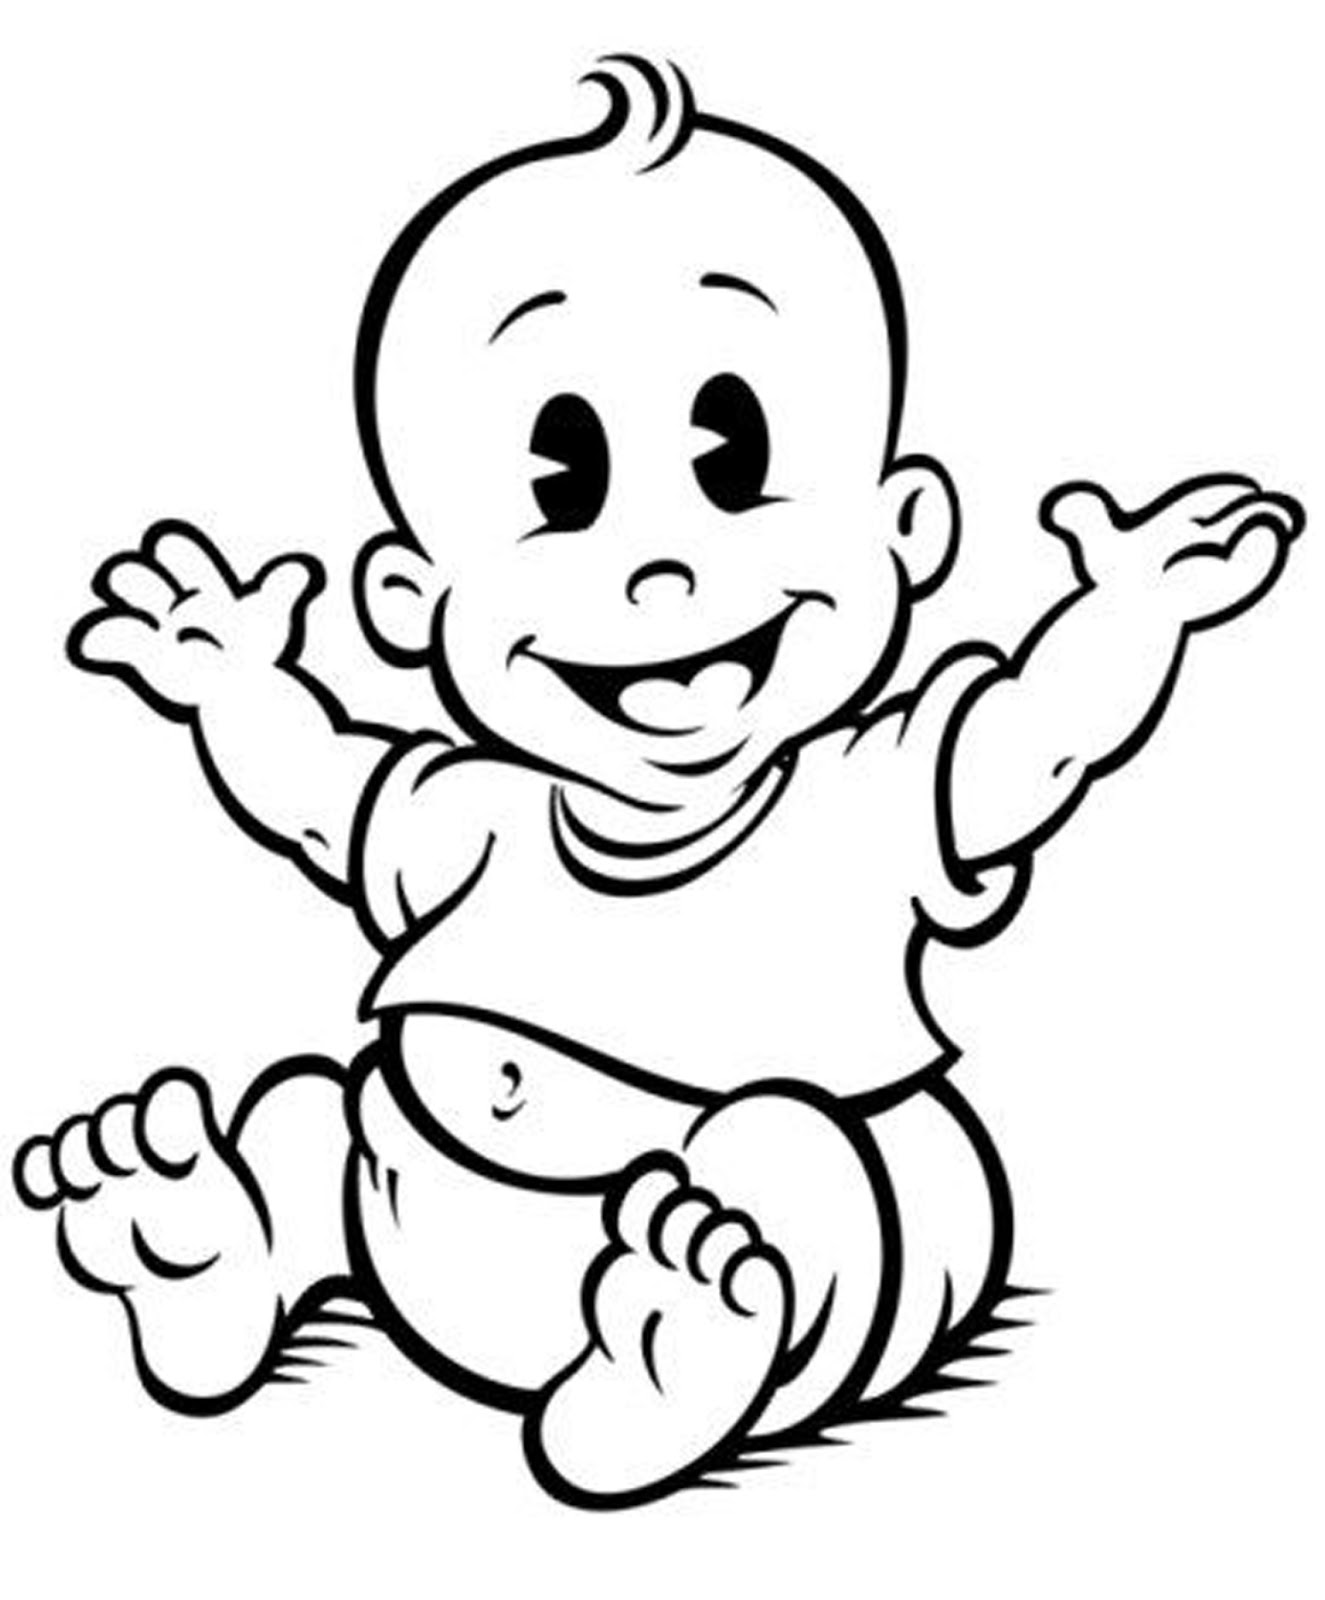 Baby Shower Black And White Clipart